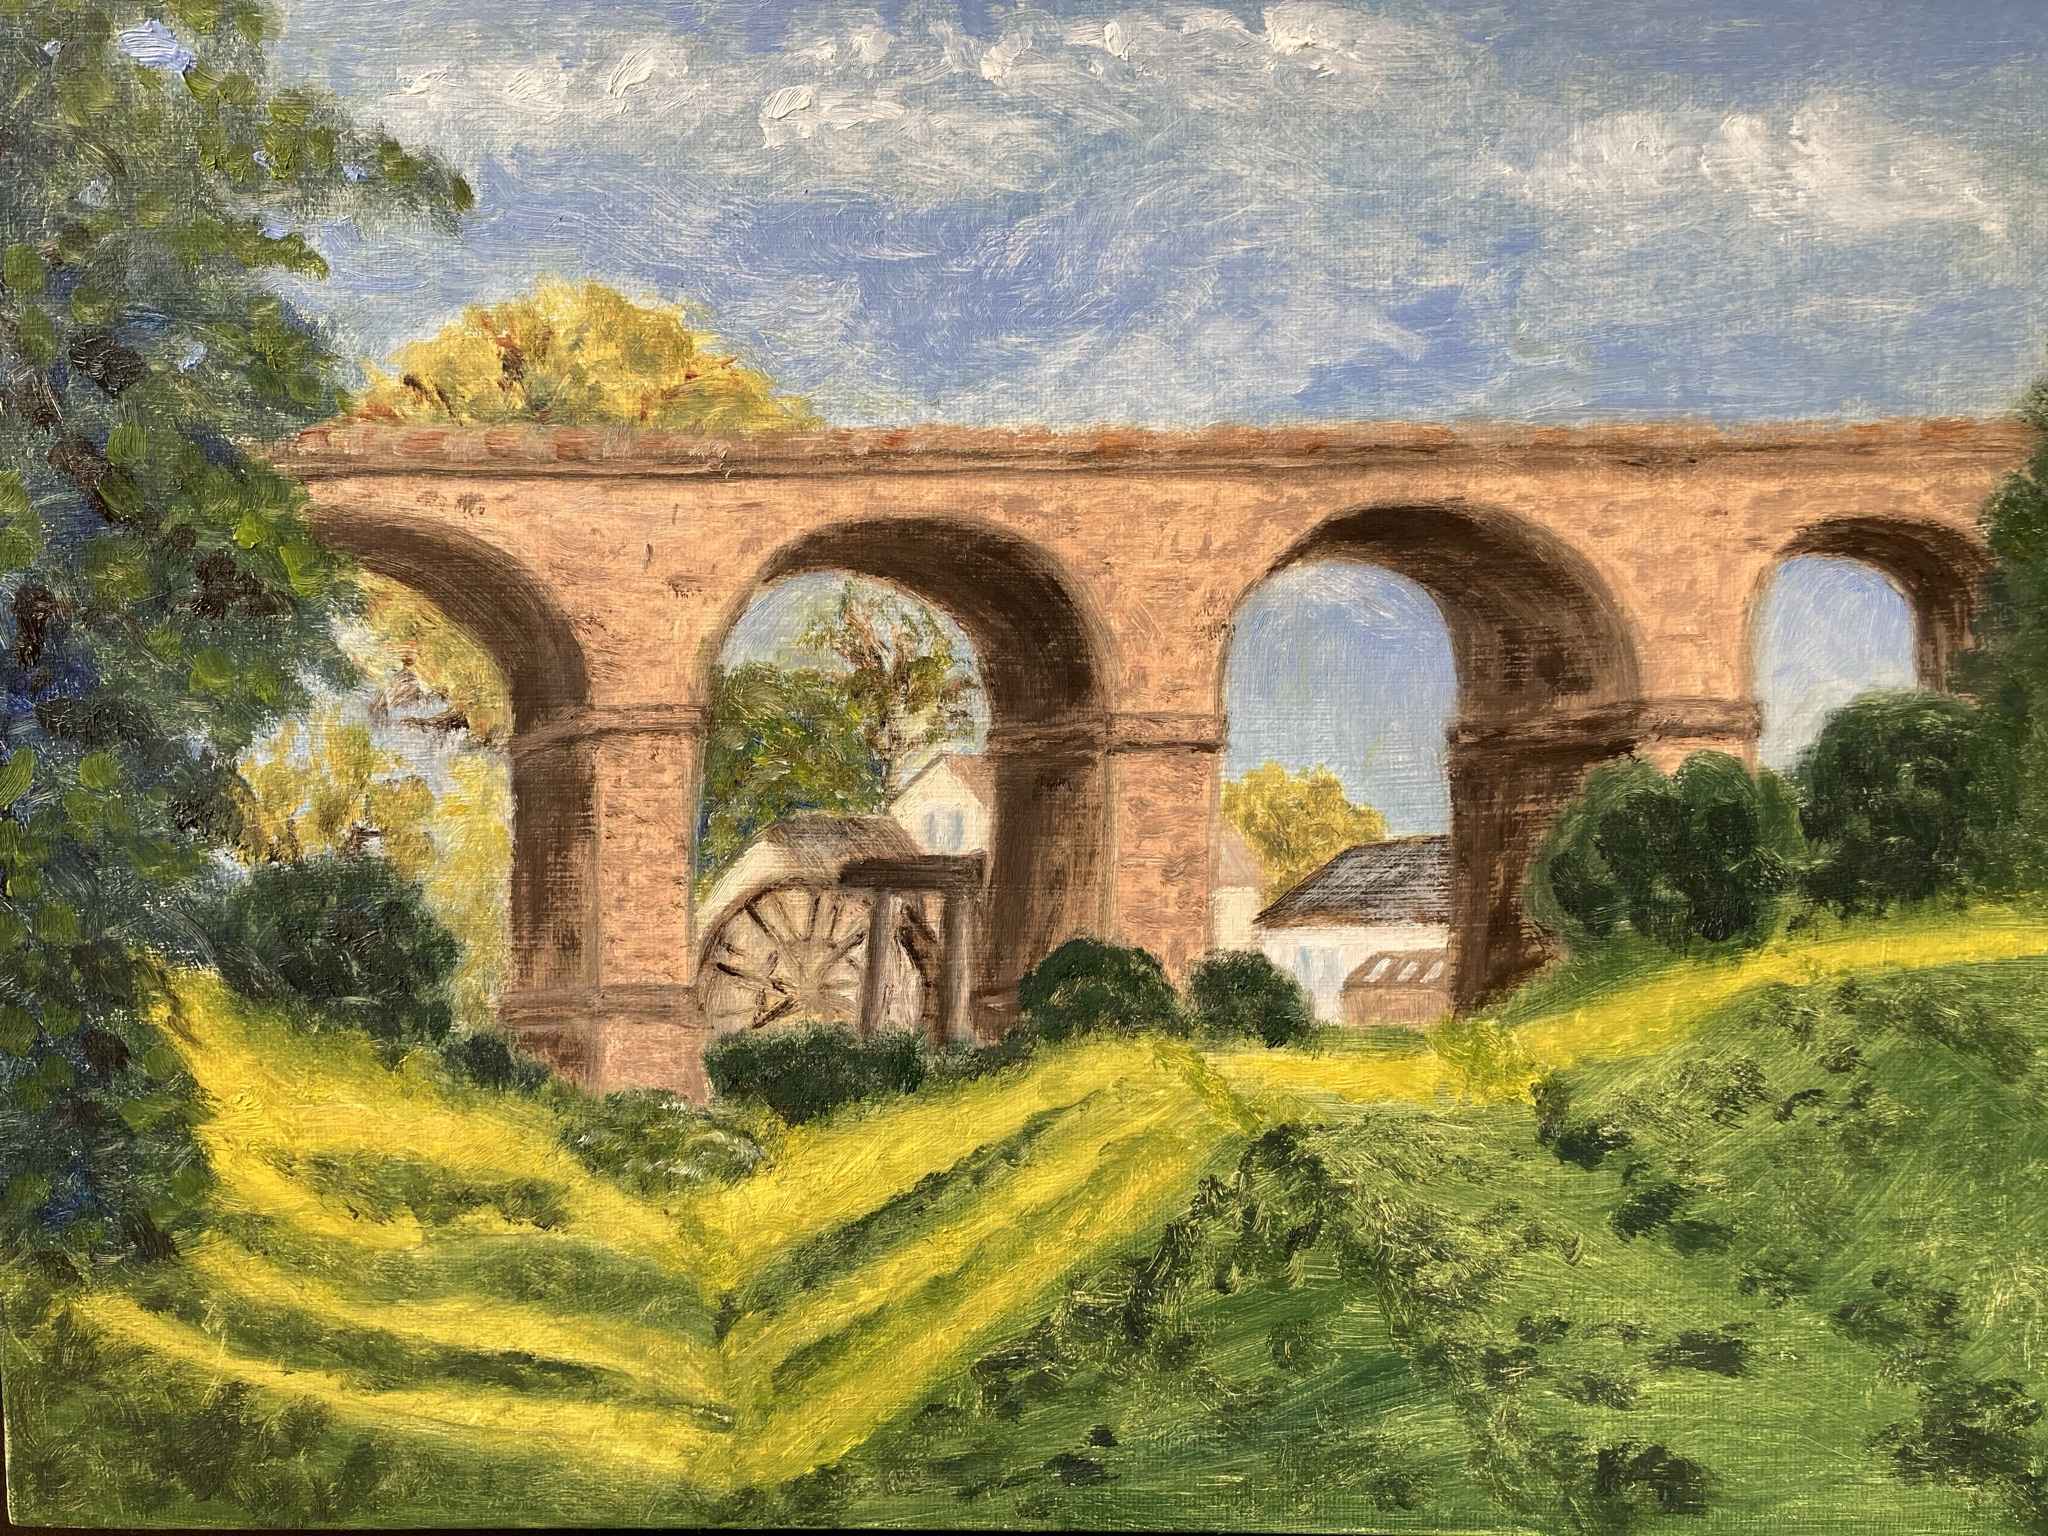 20. Daniel's Mill Viaduct